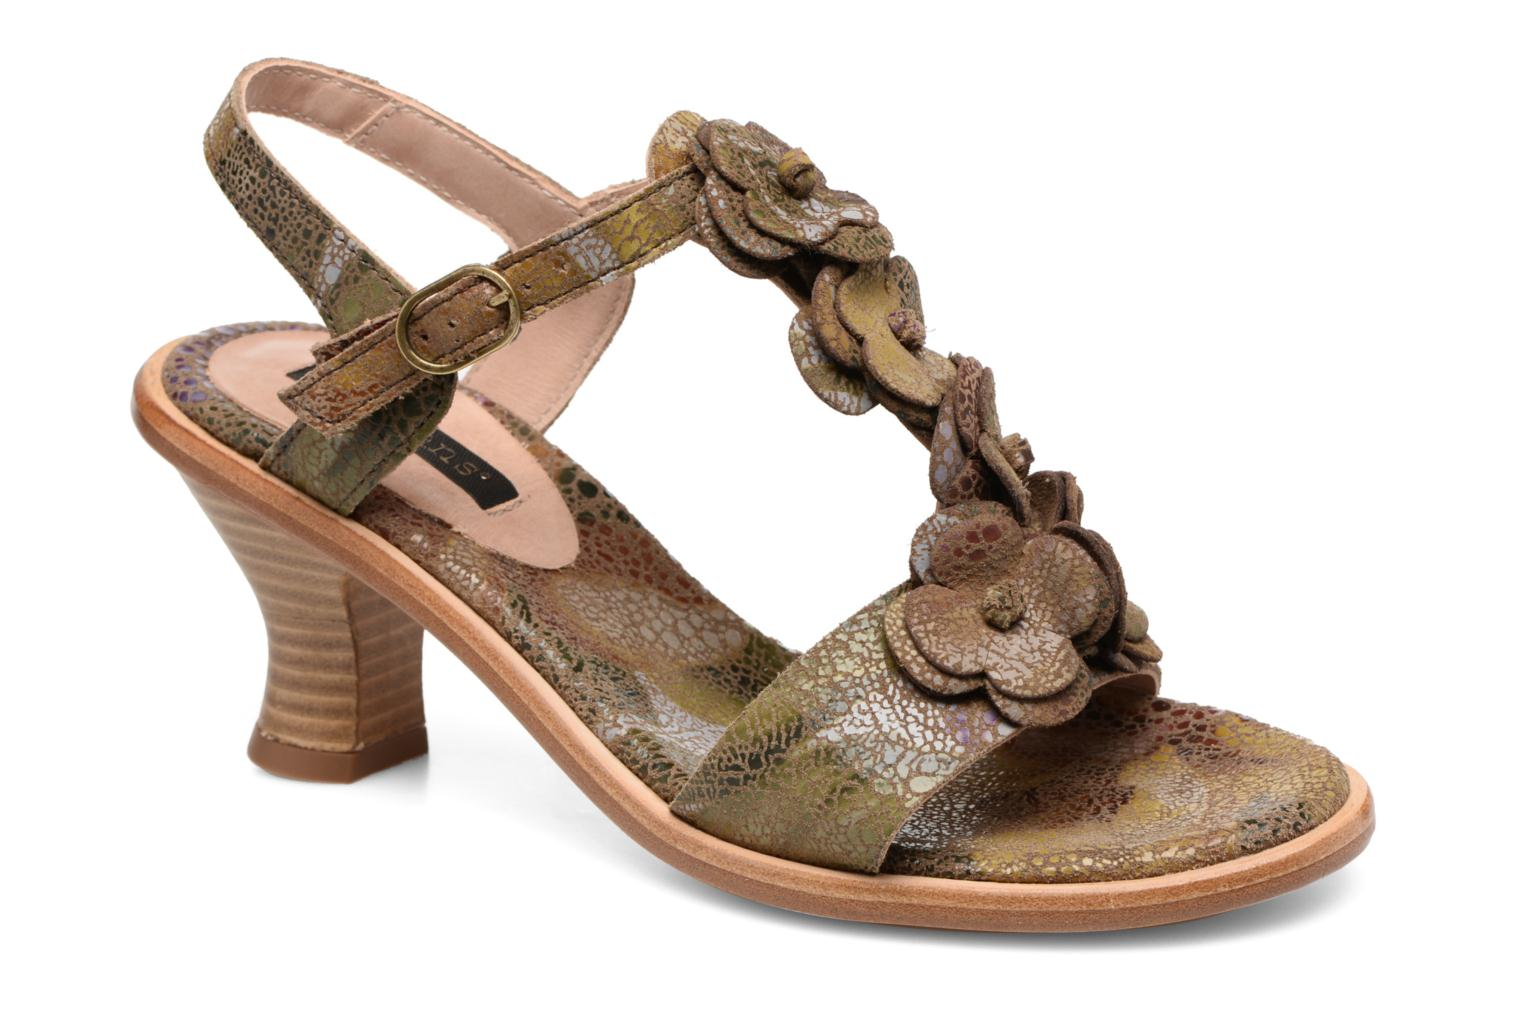 Negreda S982 Floral Taupe